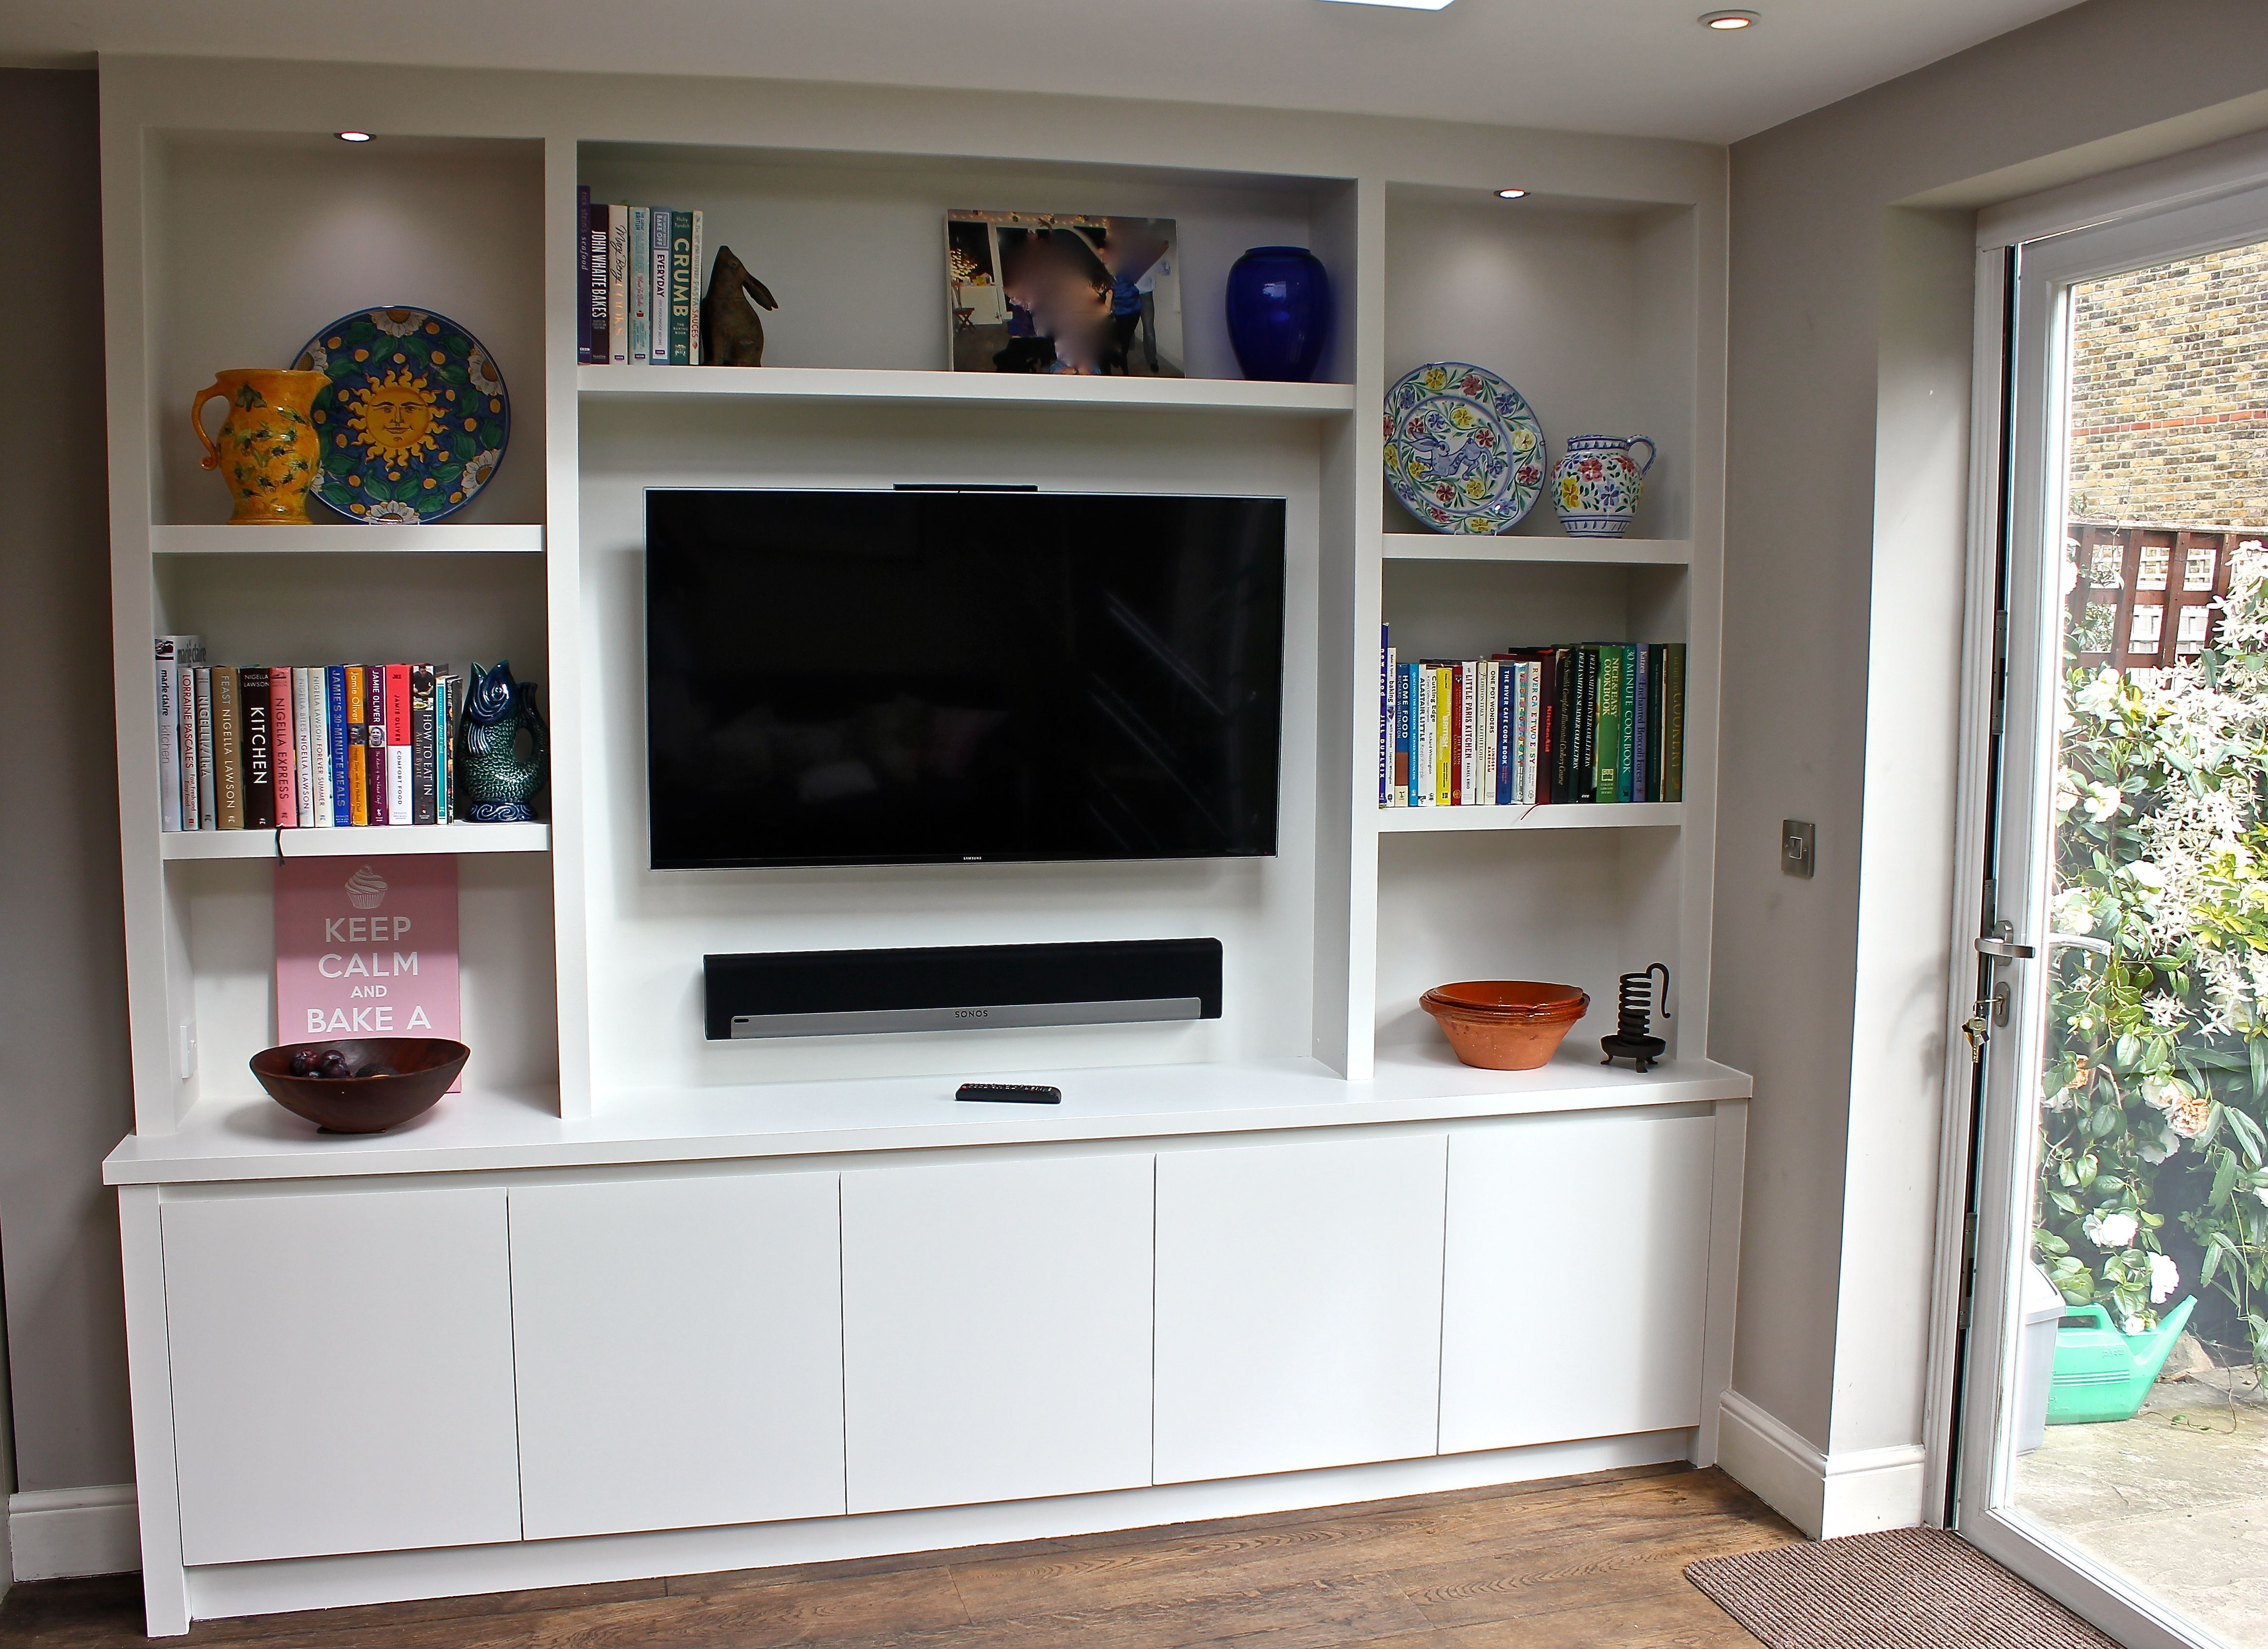 Uncategorized Contemporary Media Storage a contemporary bespoke bookcasedisplay unit ideal storage for plasma screen with sky box